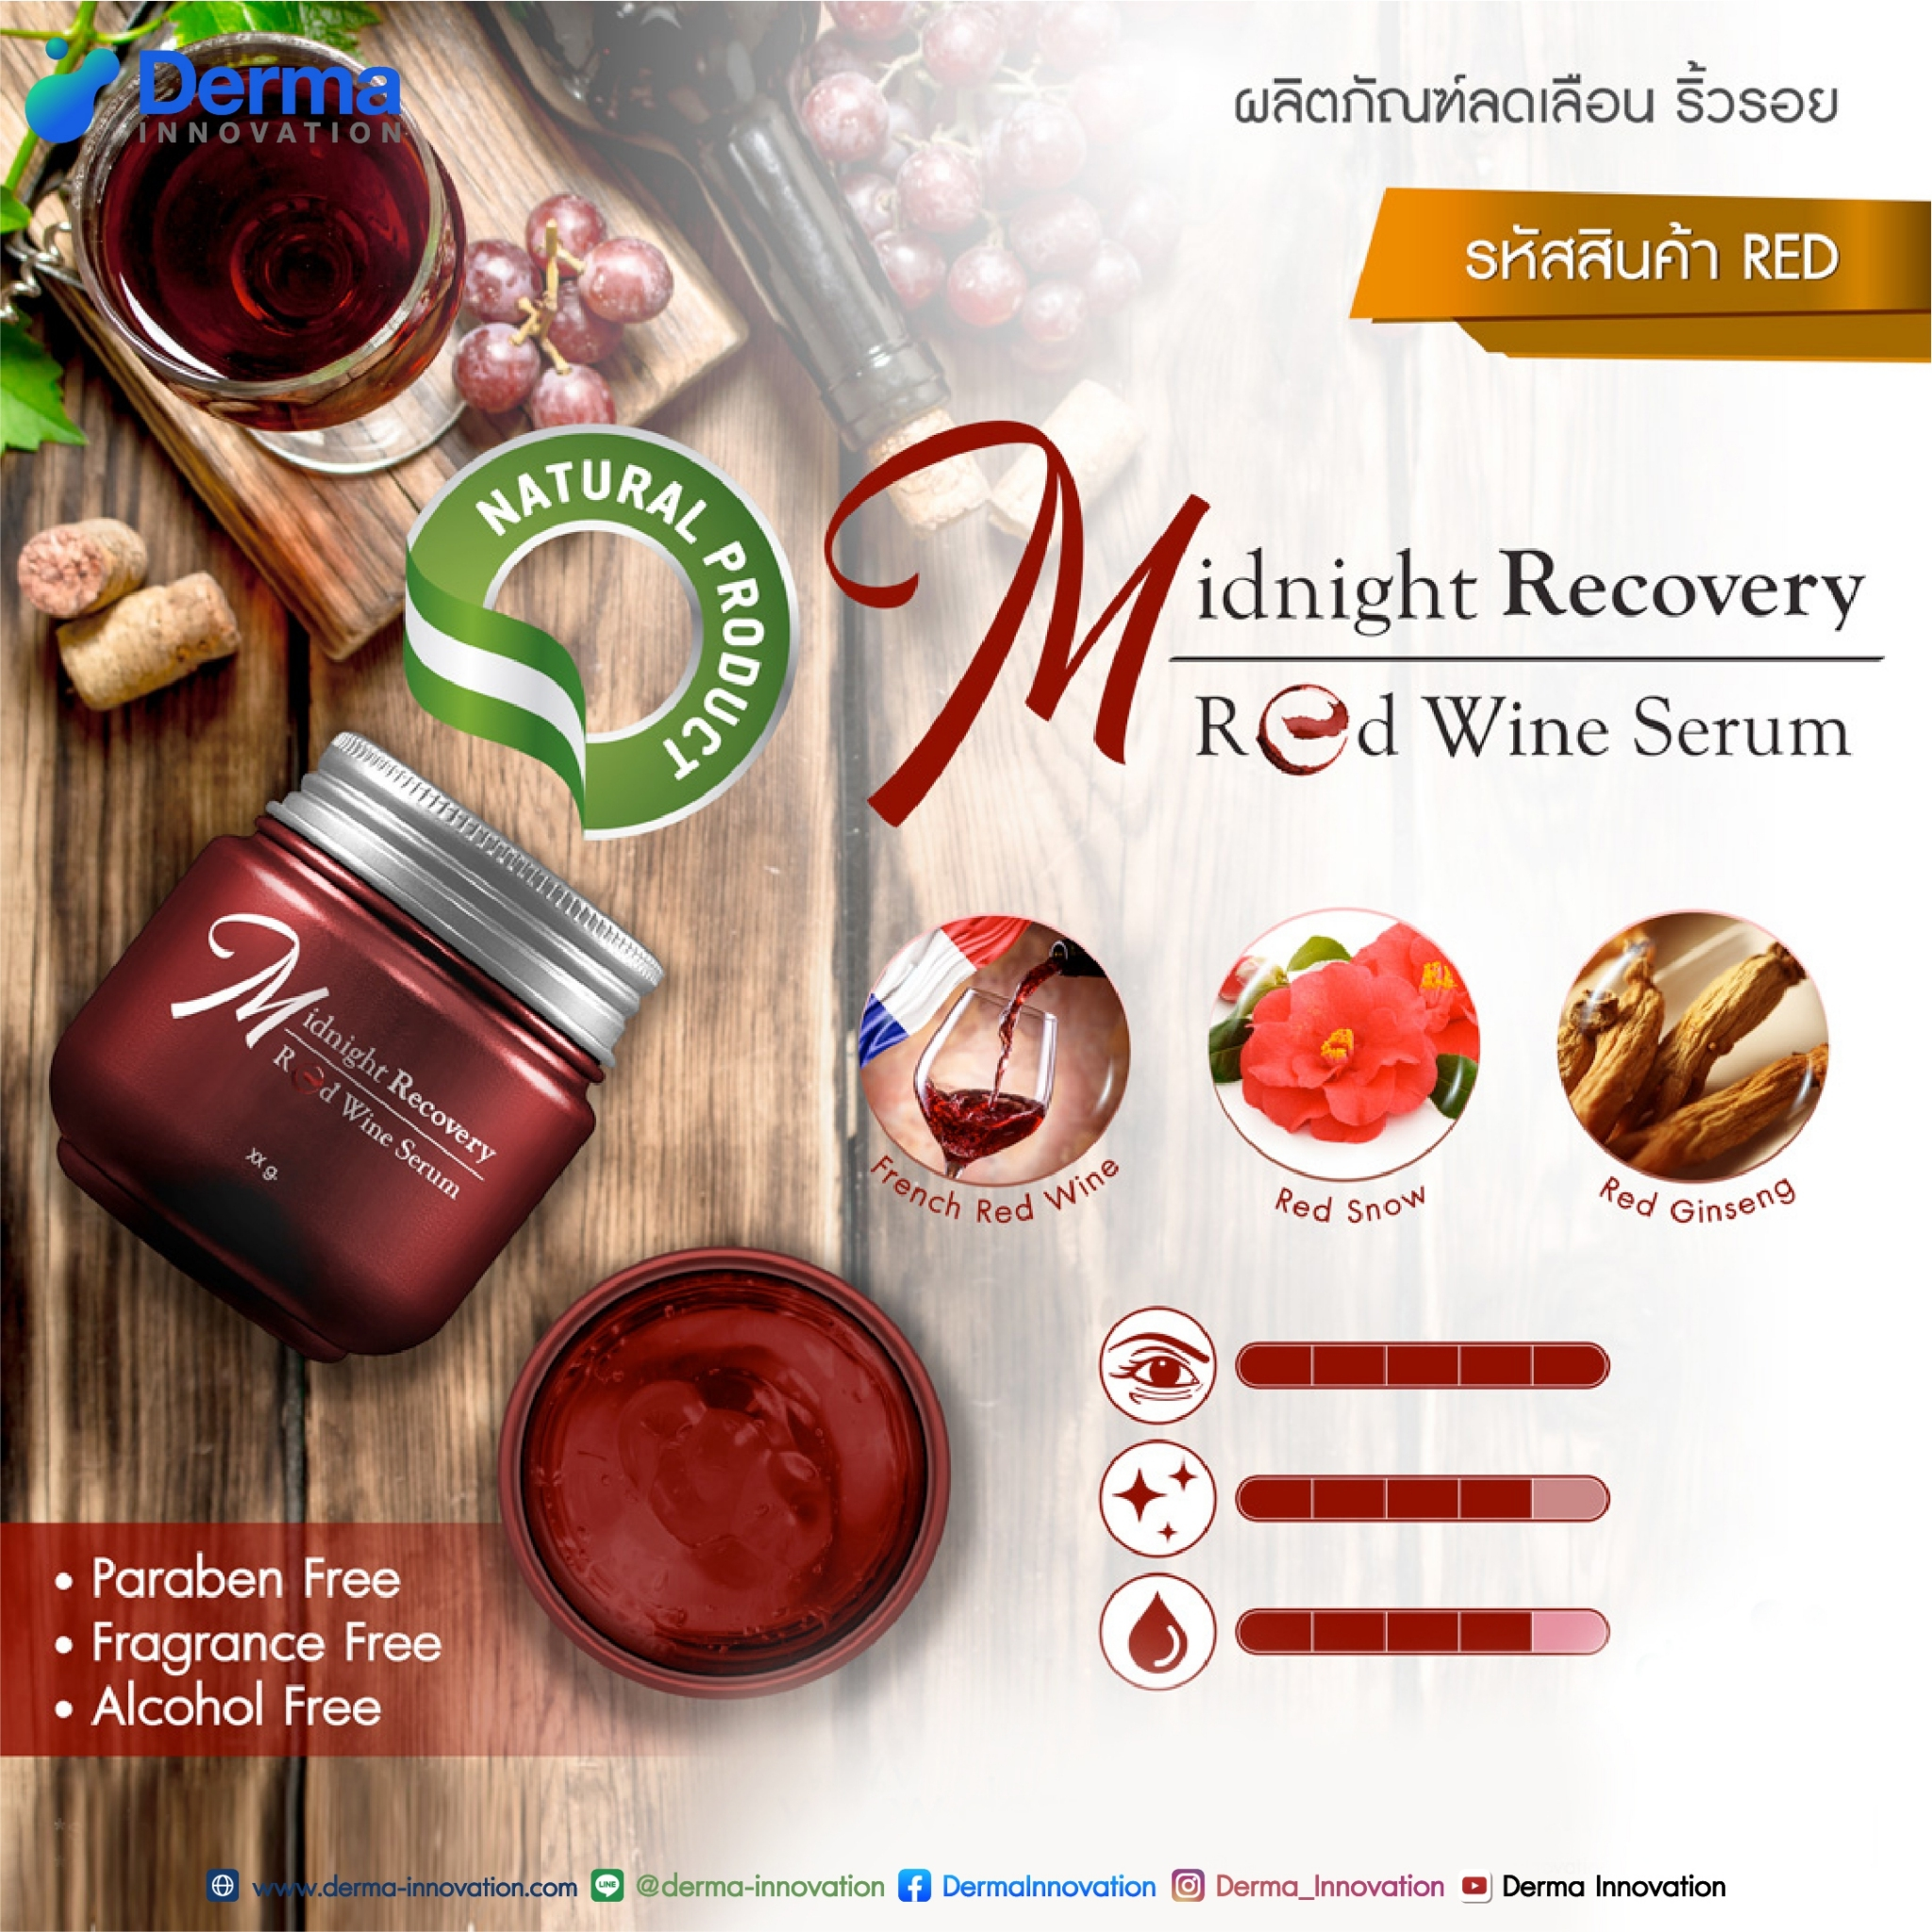 Midnight Recovery Red Wine Serum